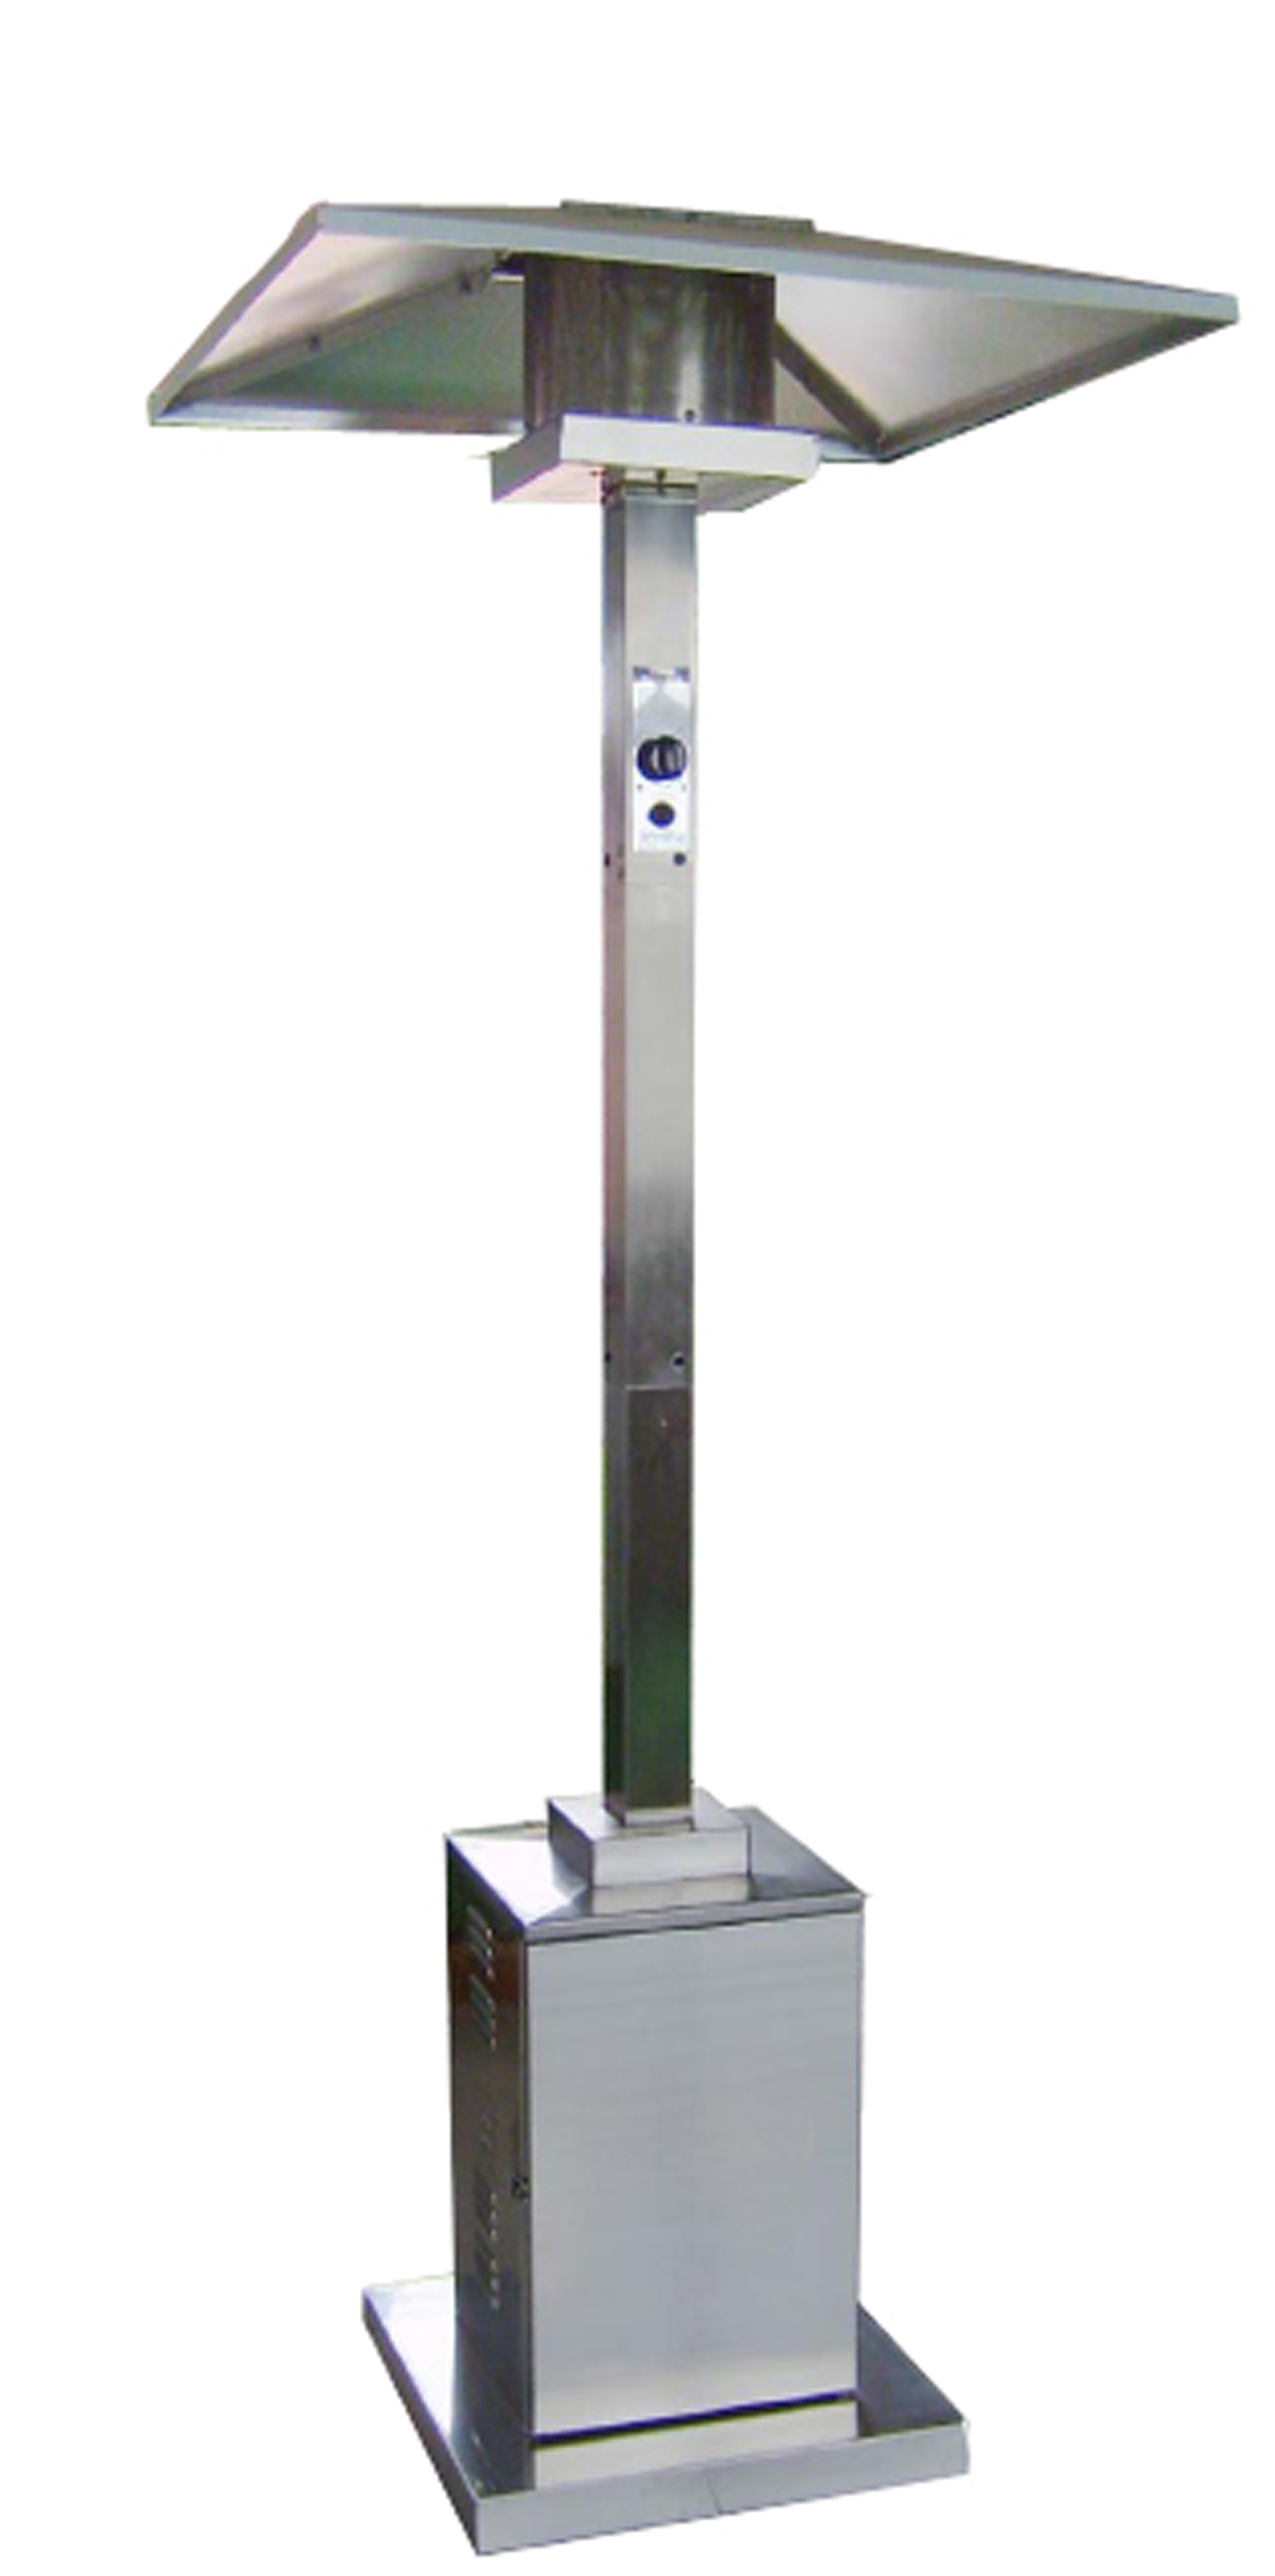 Garden Sun Commercial Stainless Steel Patio Heater